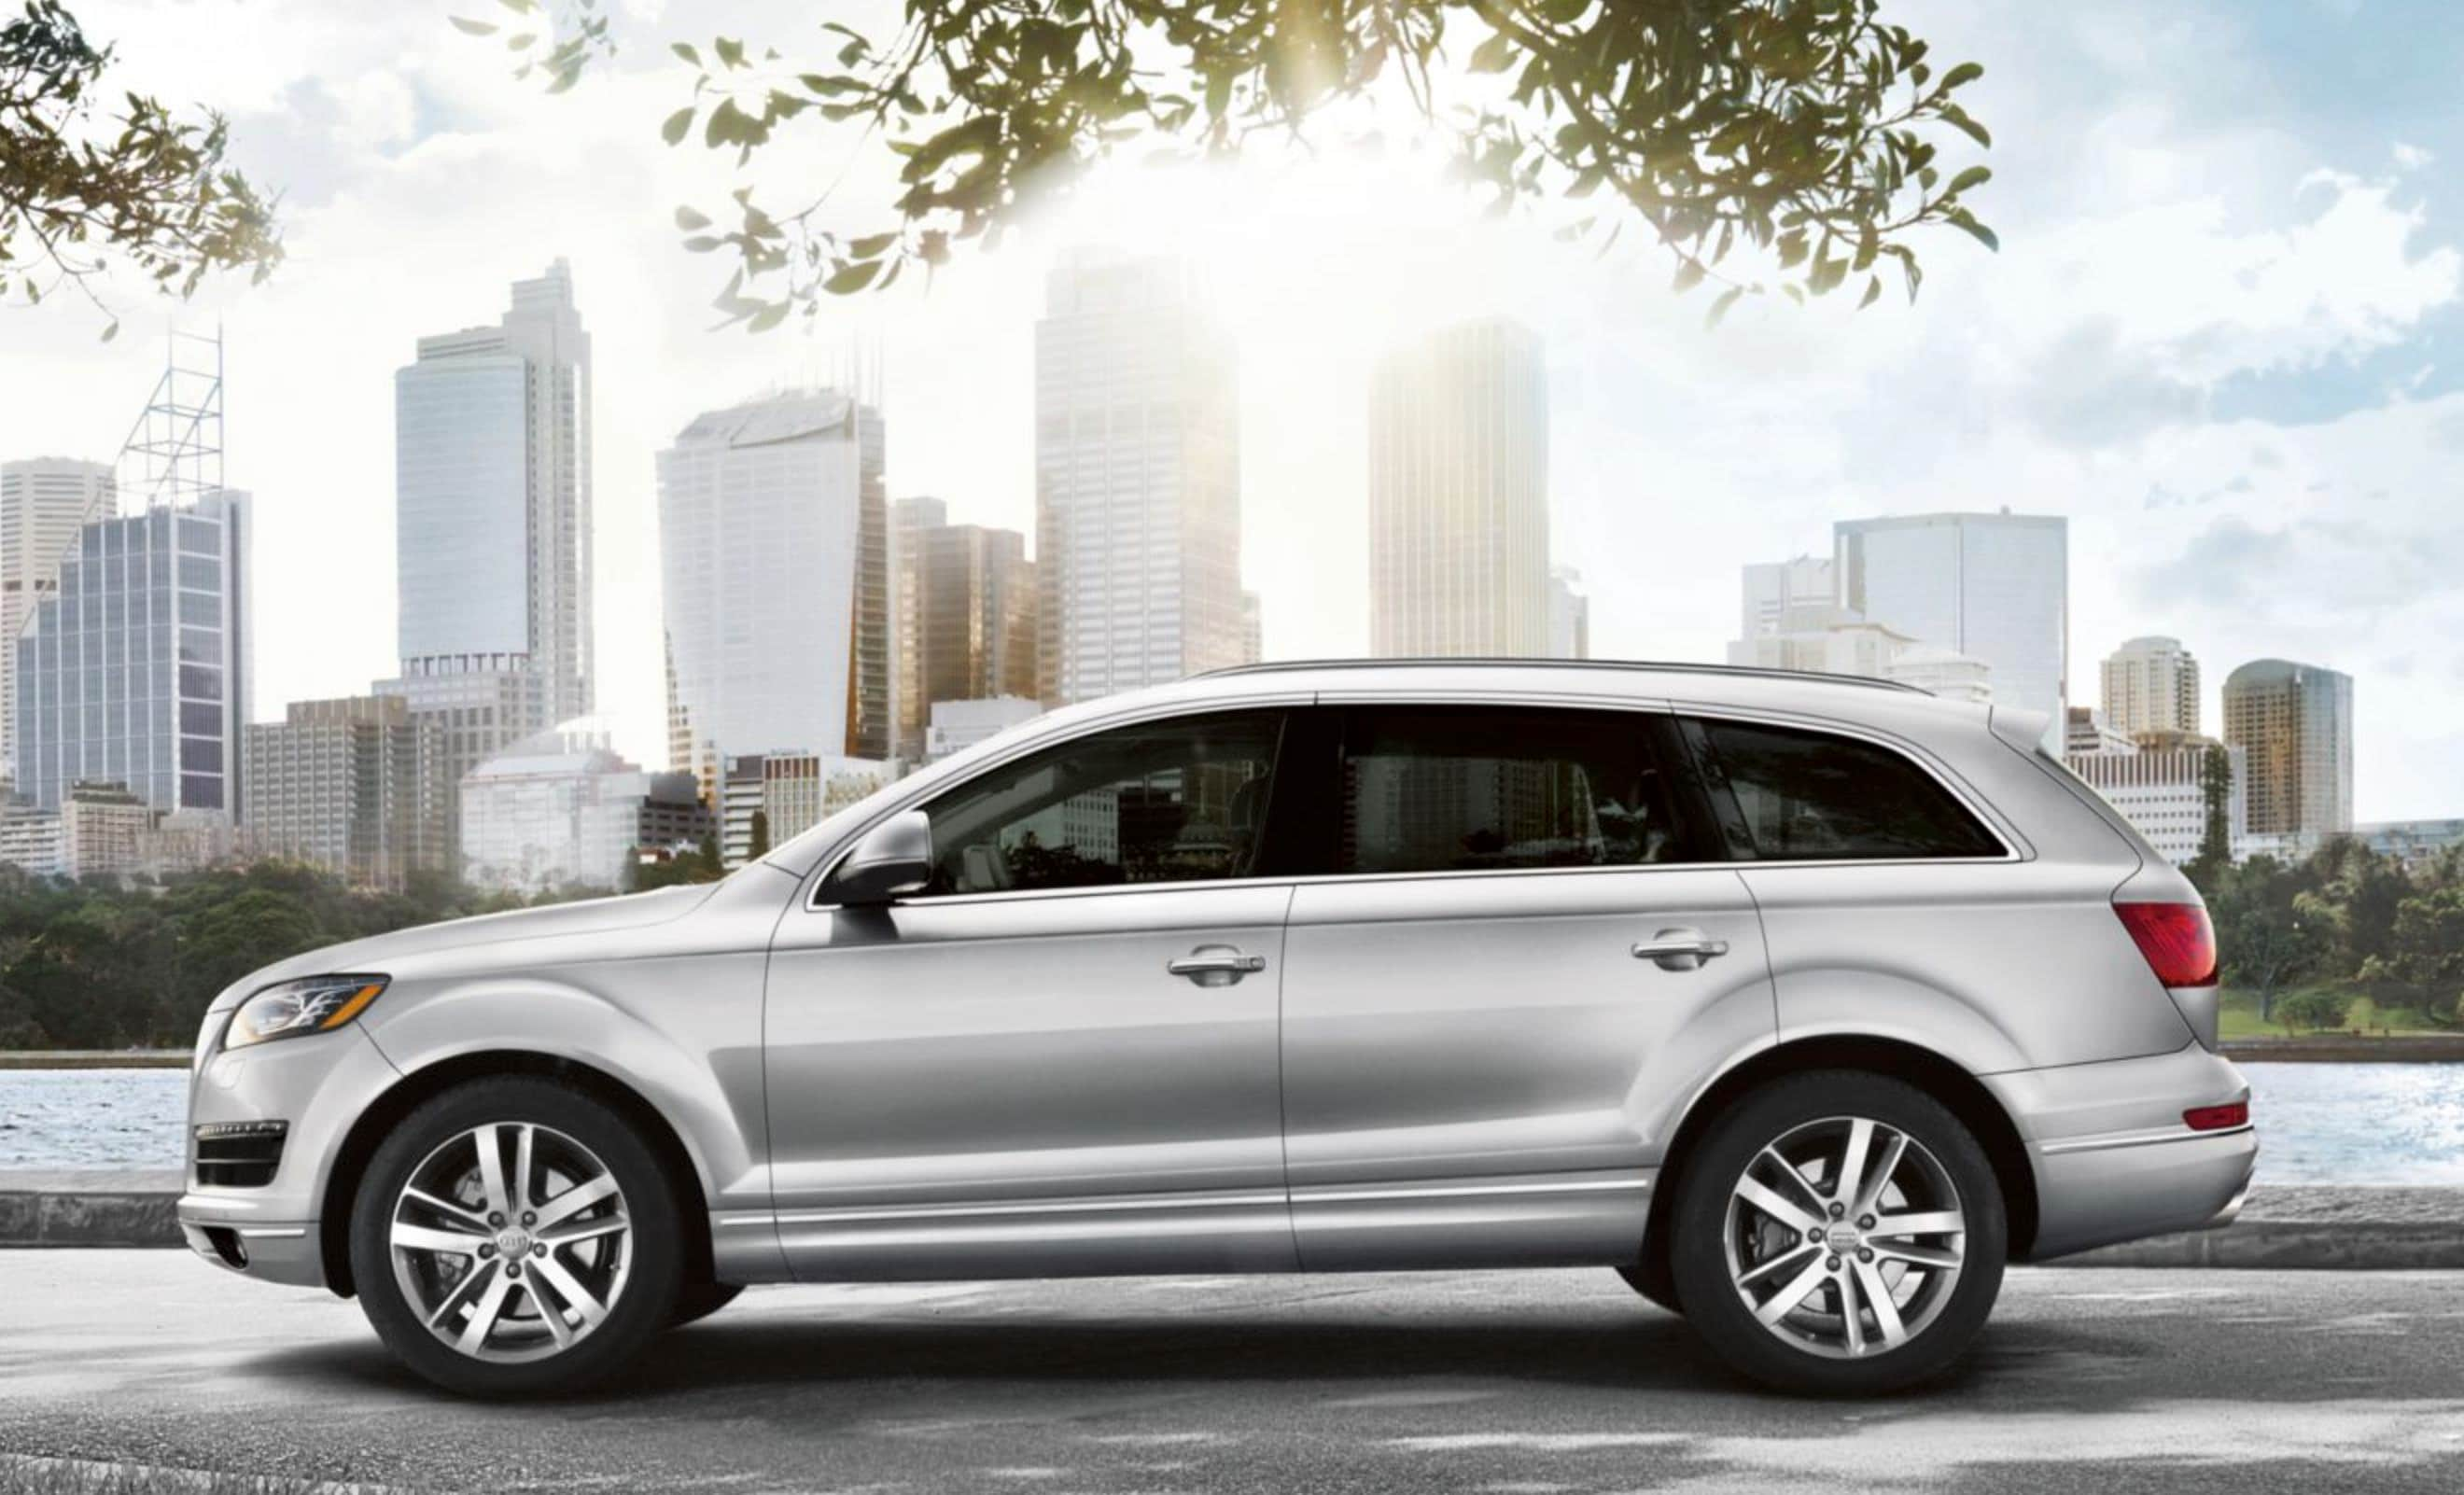 Audi Fort Wayne | 2014 Audi Q7 Review